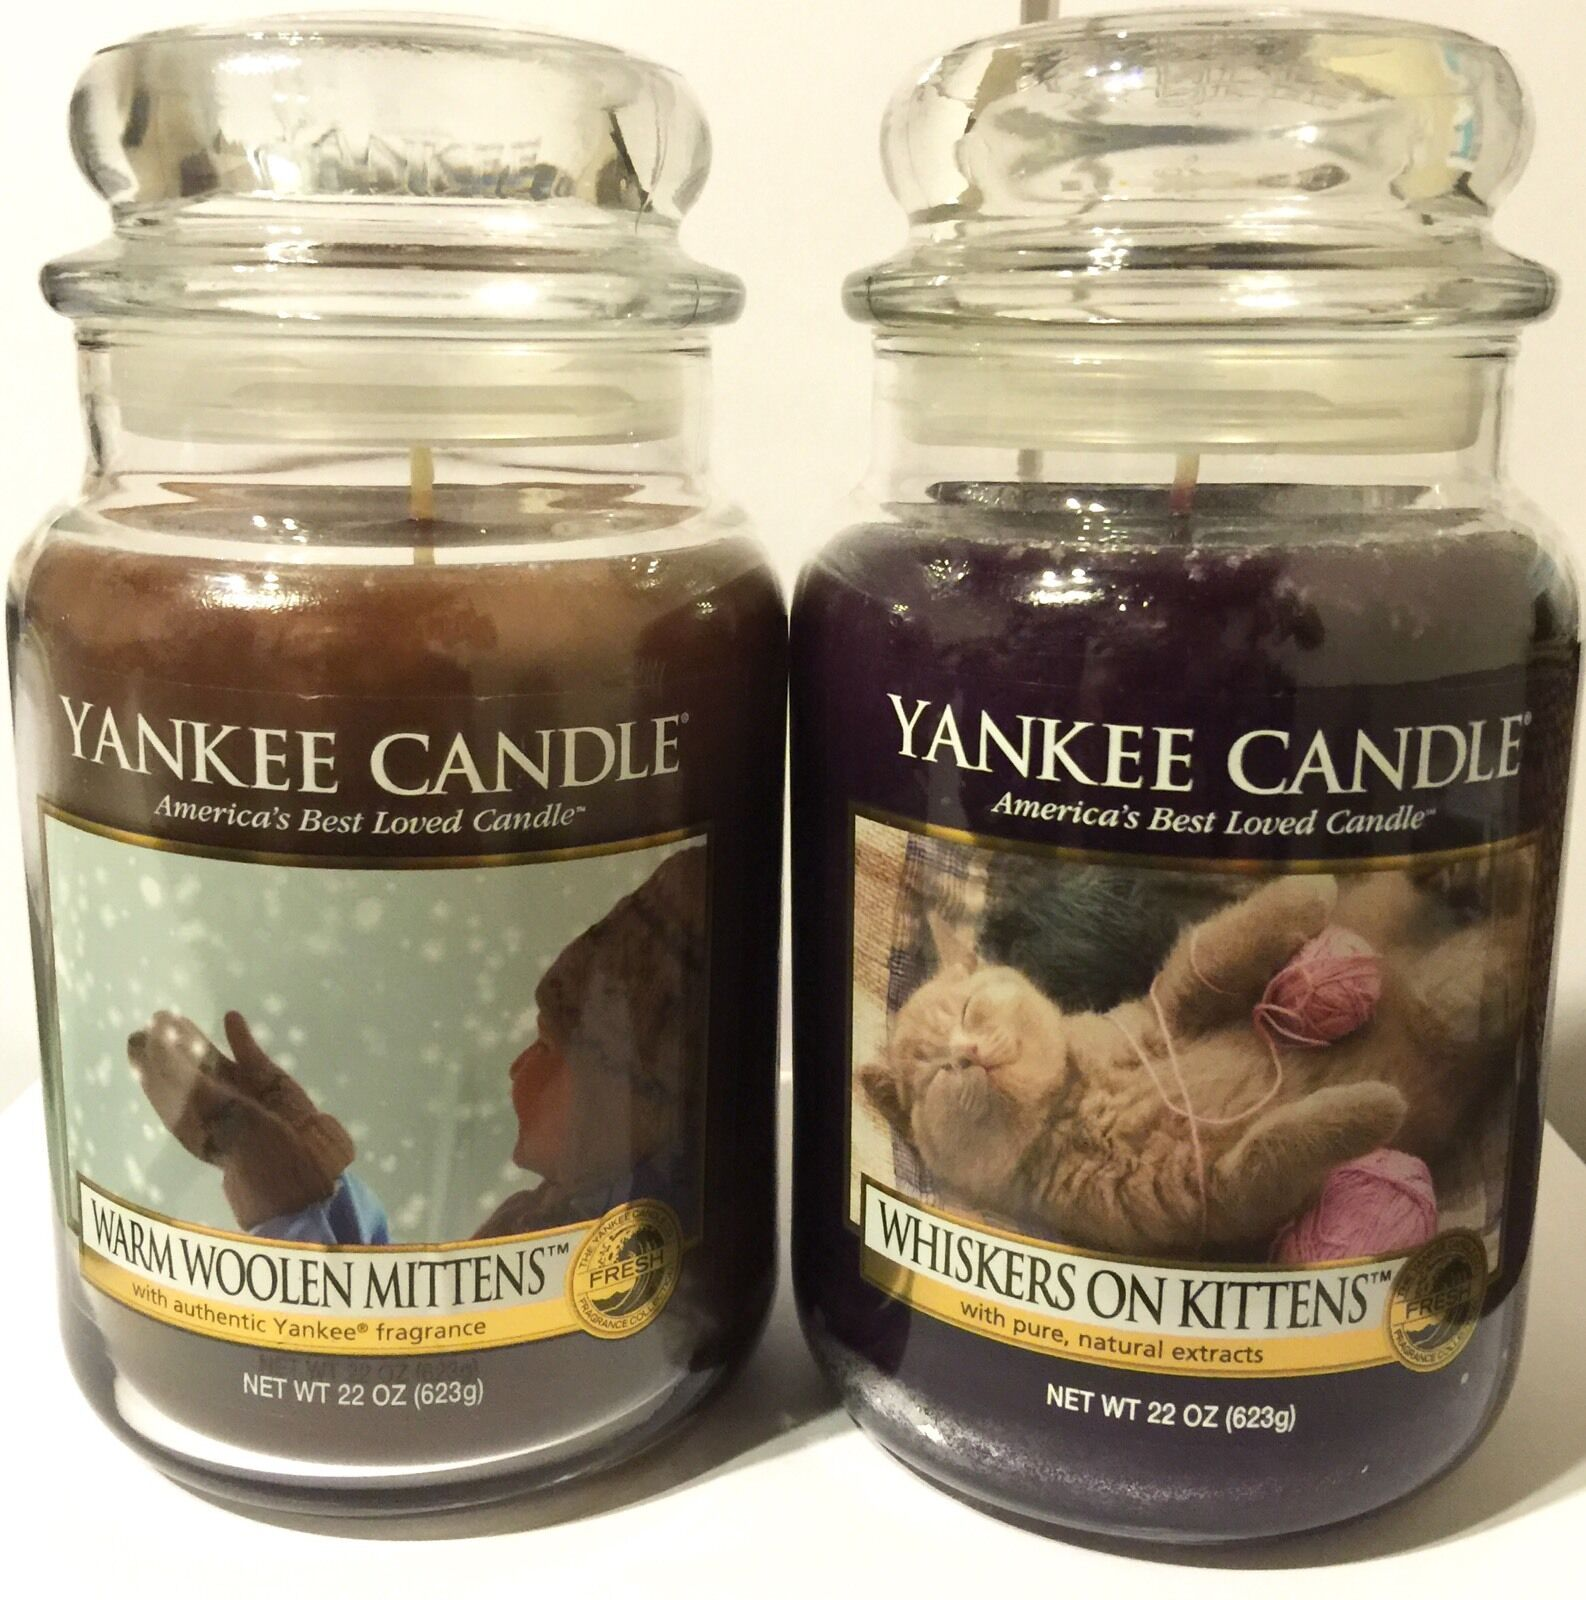 YANKEE CANDLE WARM WOOLEN MITTENS WHISKERS ON KITTENS SOY WAX SCENTED CANDLE SET